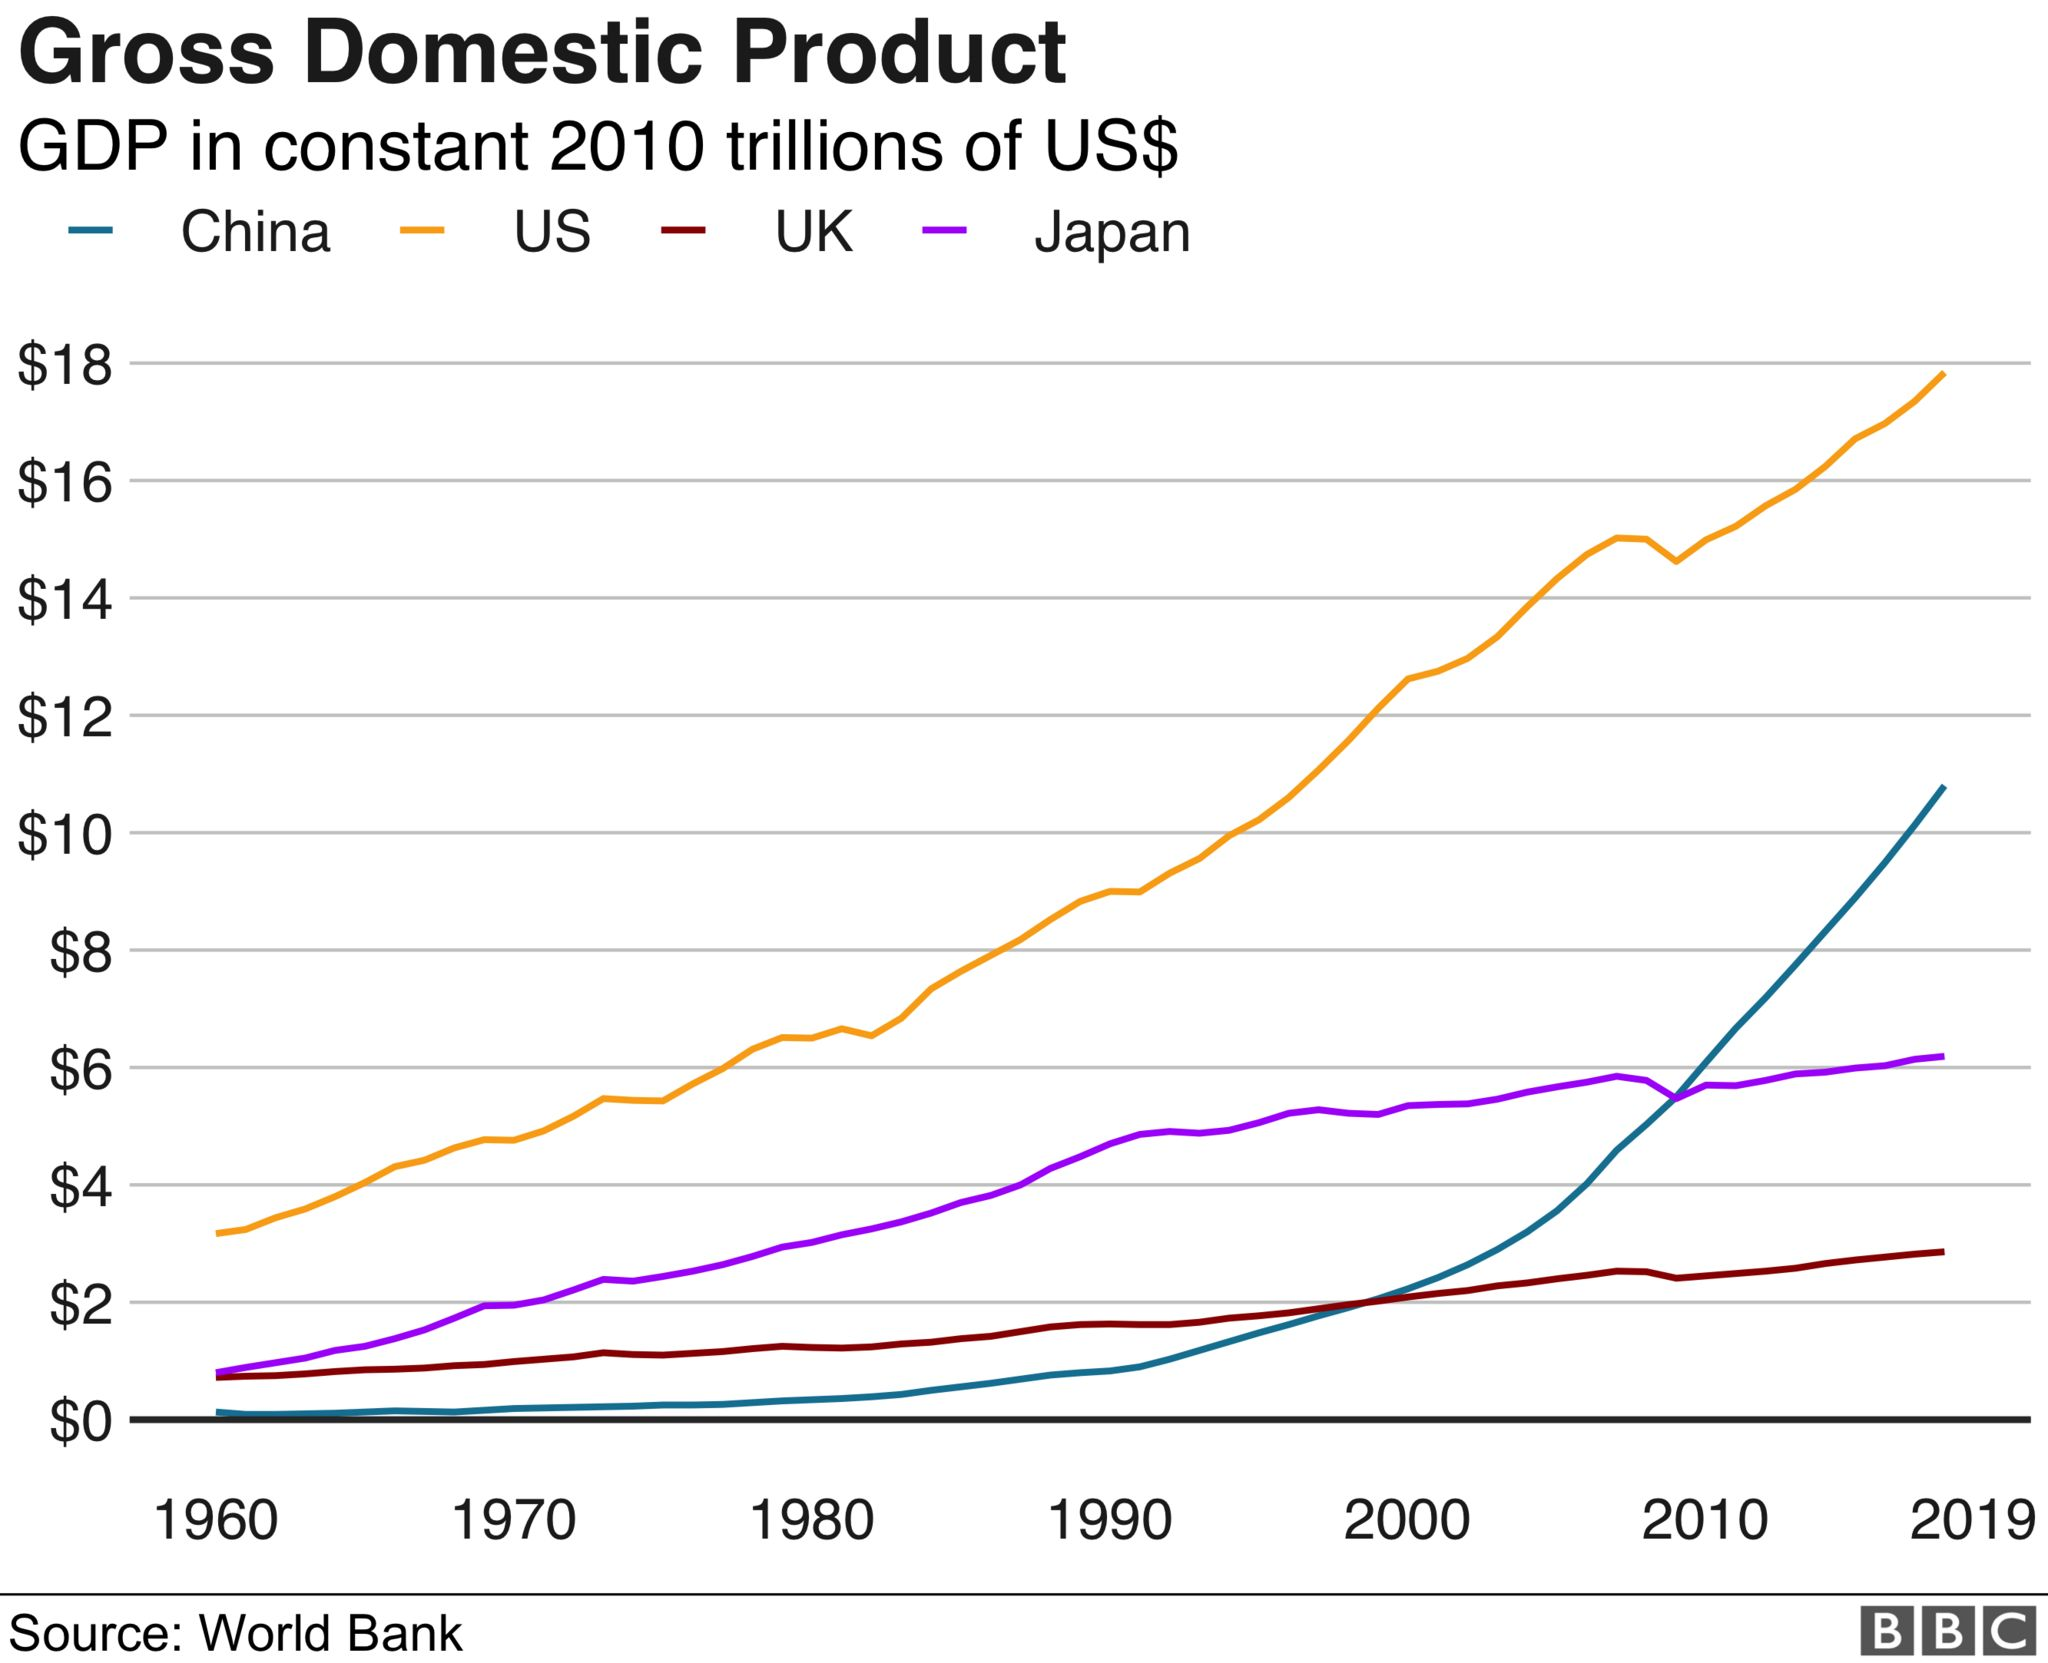 Chart showing gross domestic product of US, China, Japan and the UK